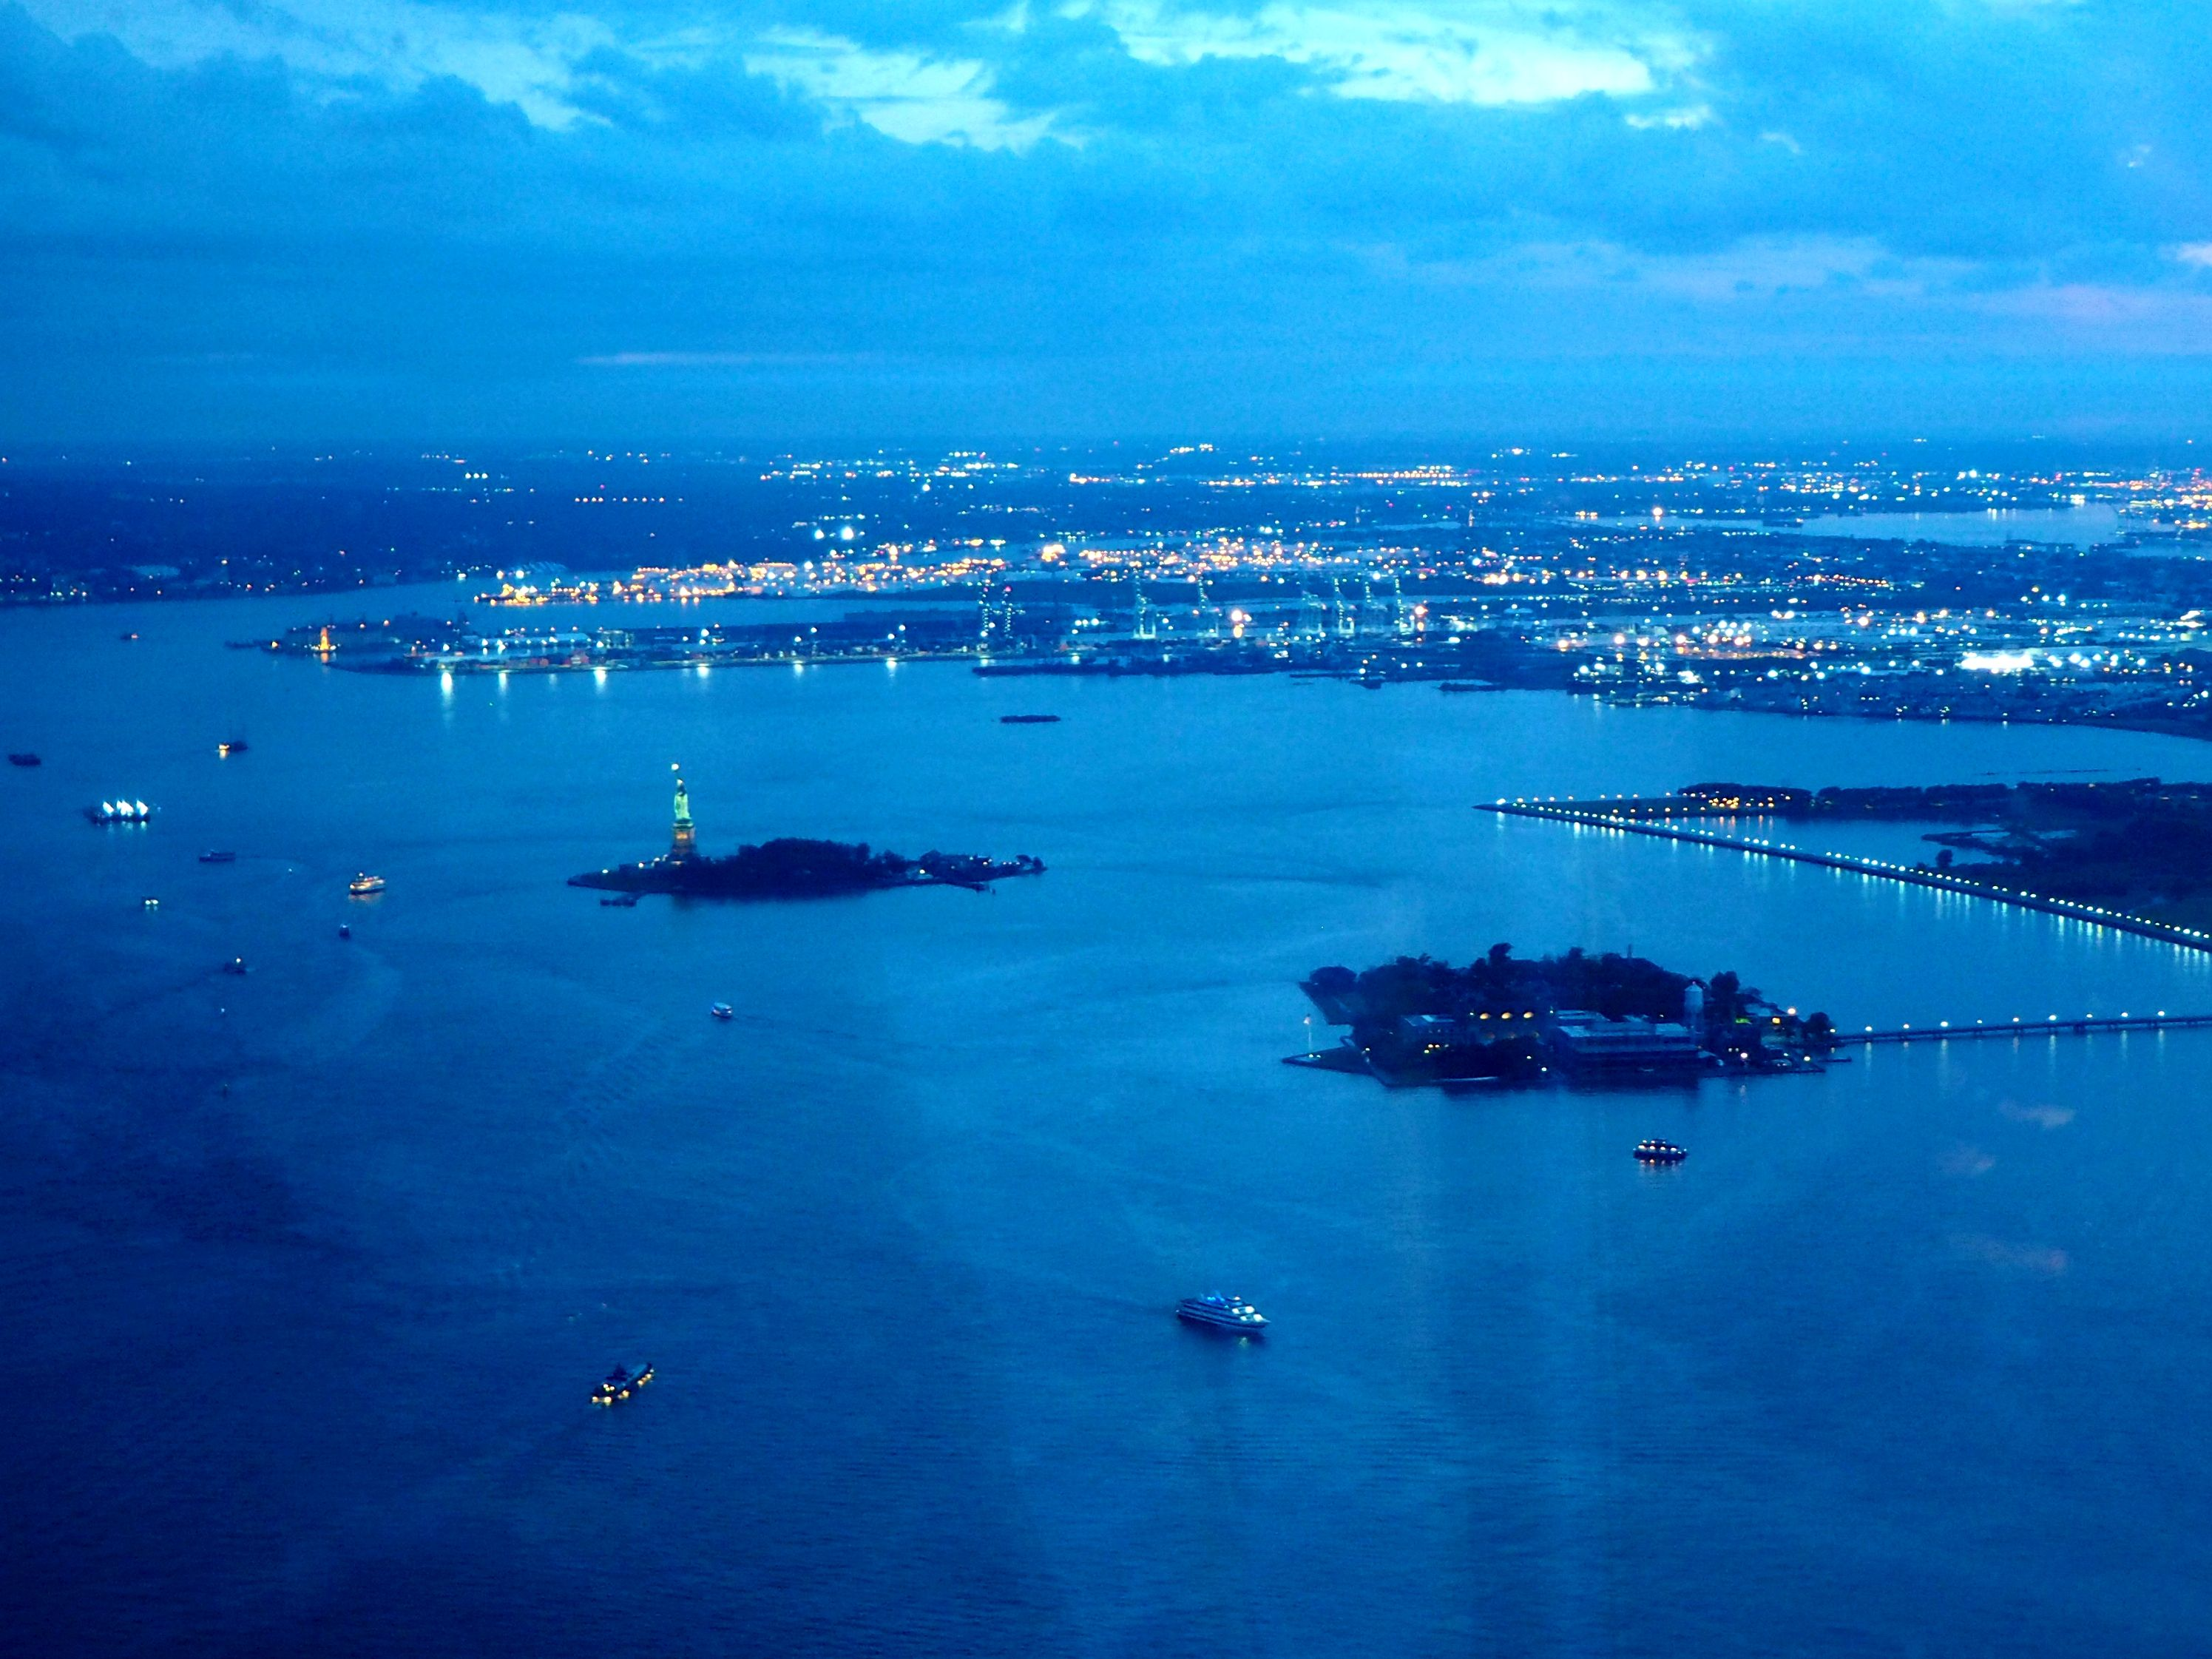 View of the Statue of Liberty from the One World Observatory